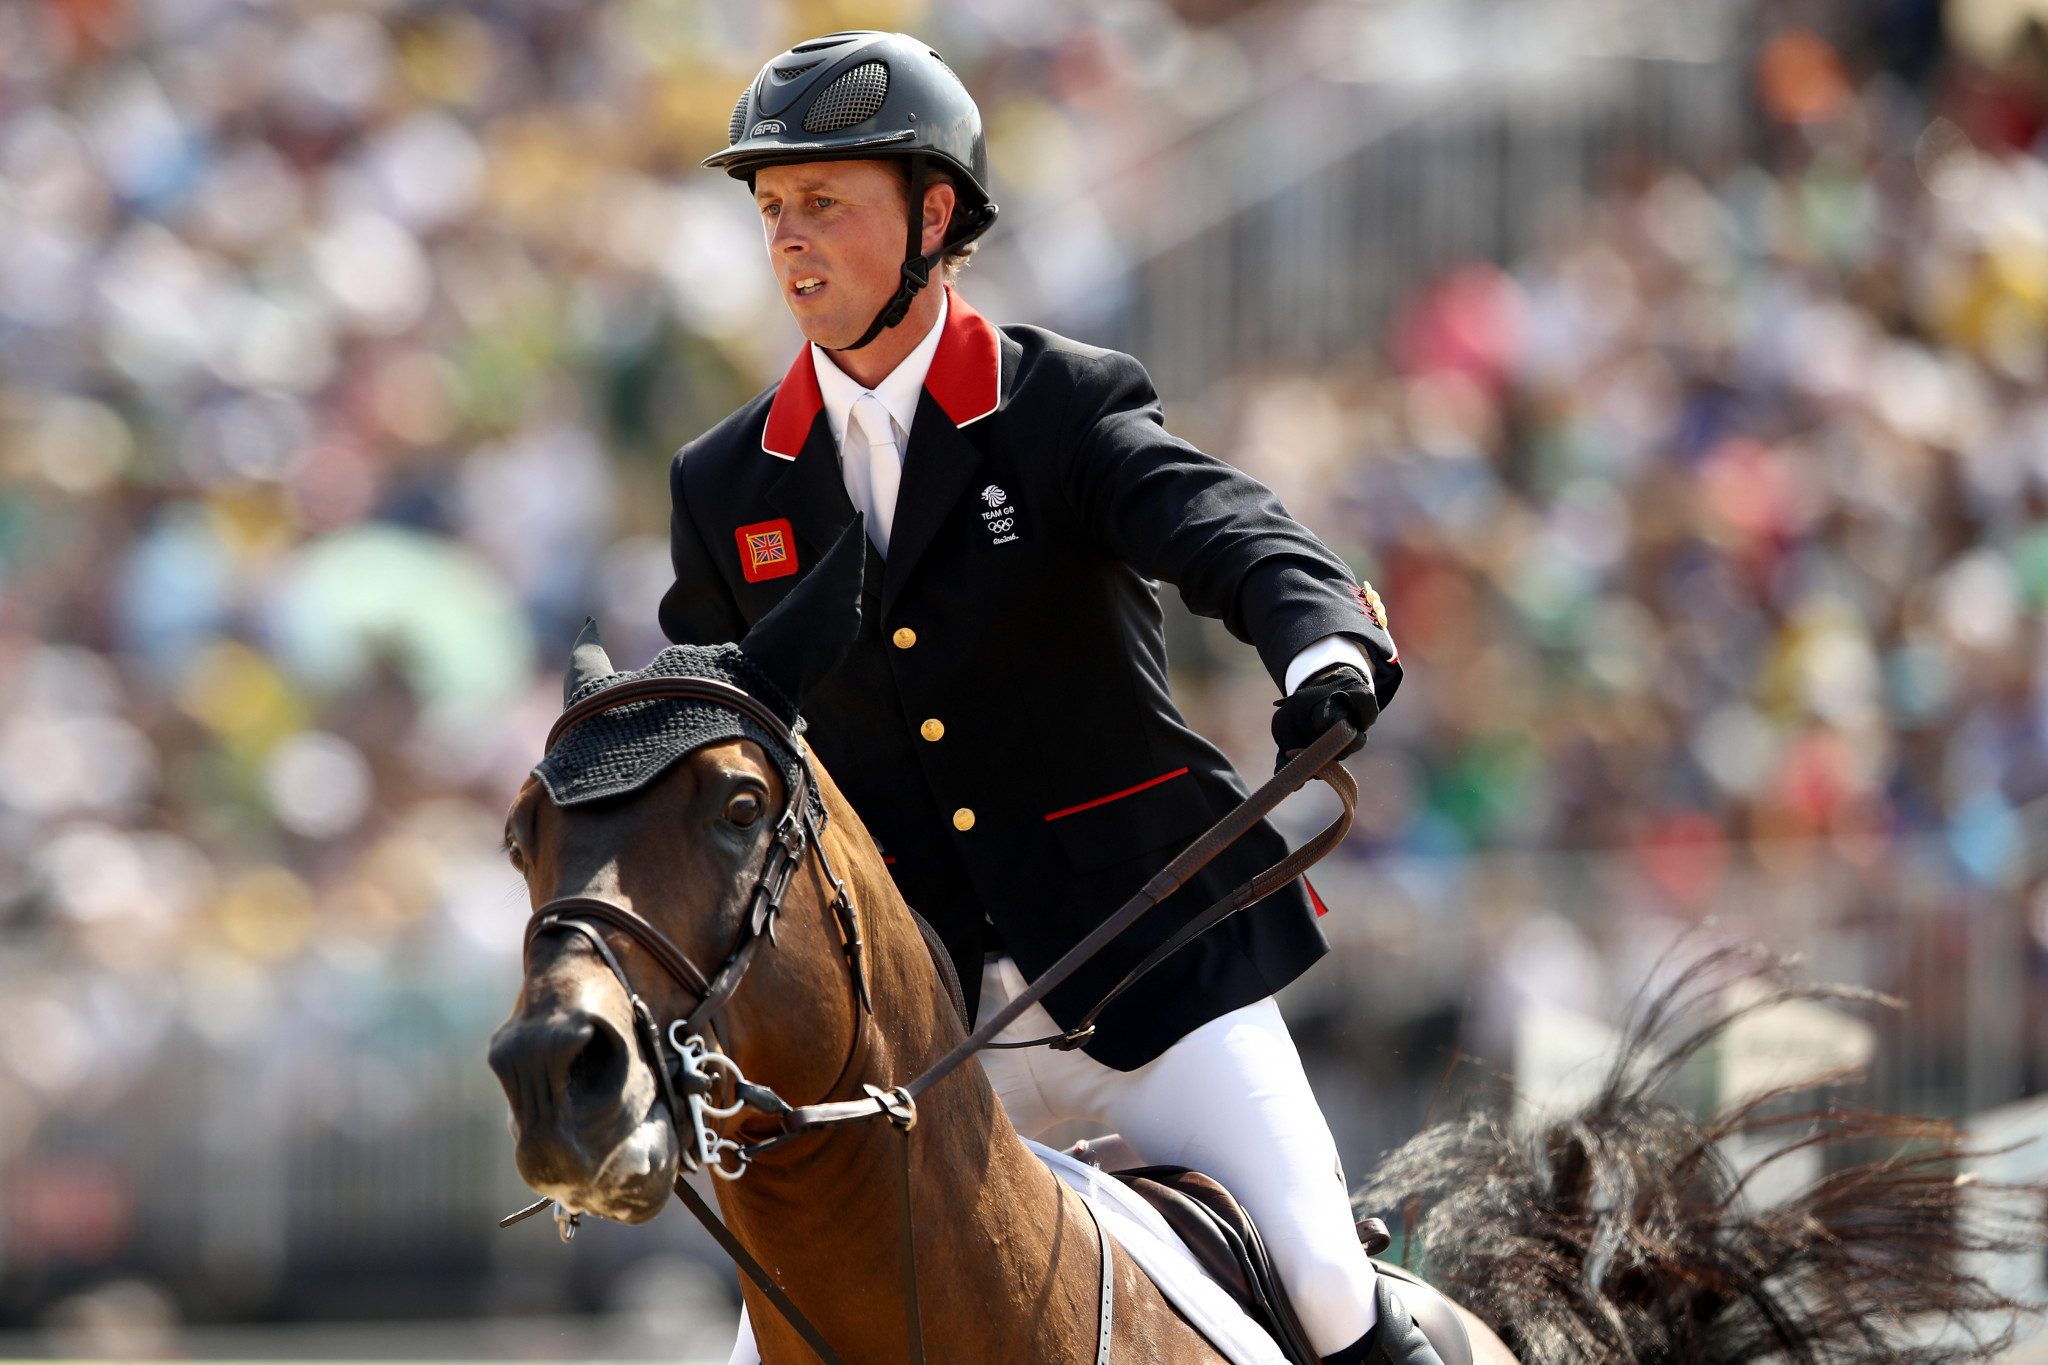 Briton Maher seeking to maintain Global Champions Tour lead in London stop